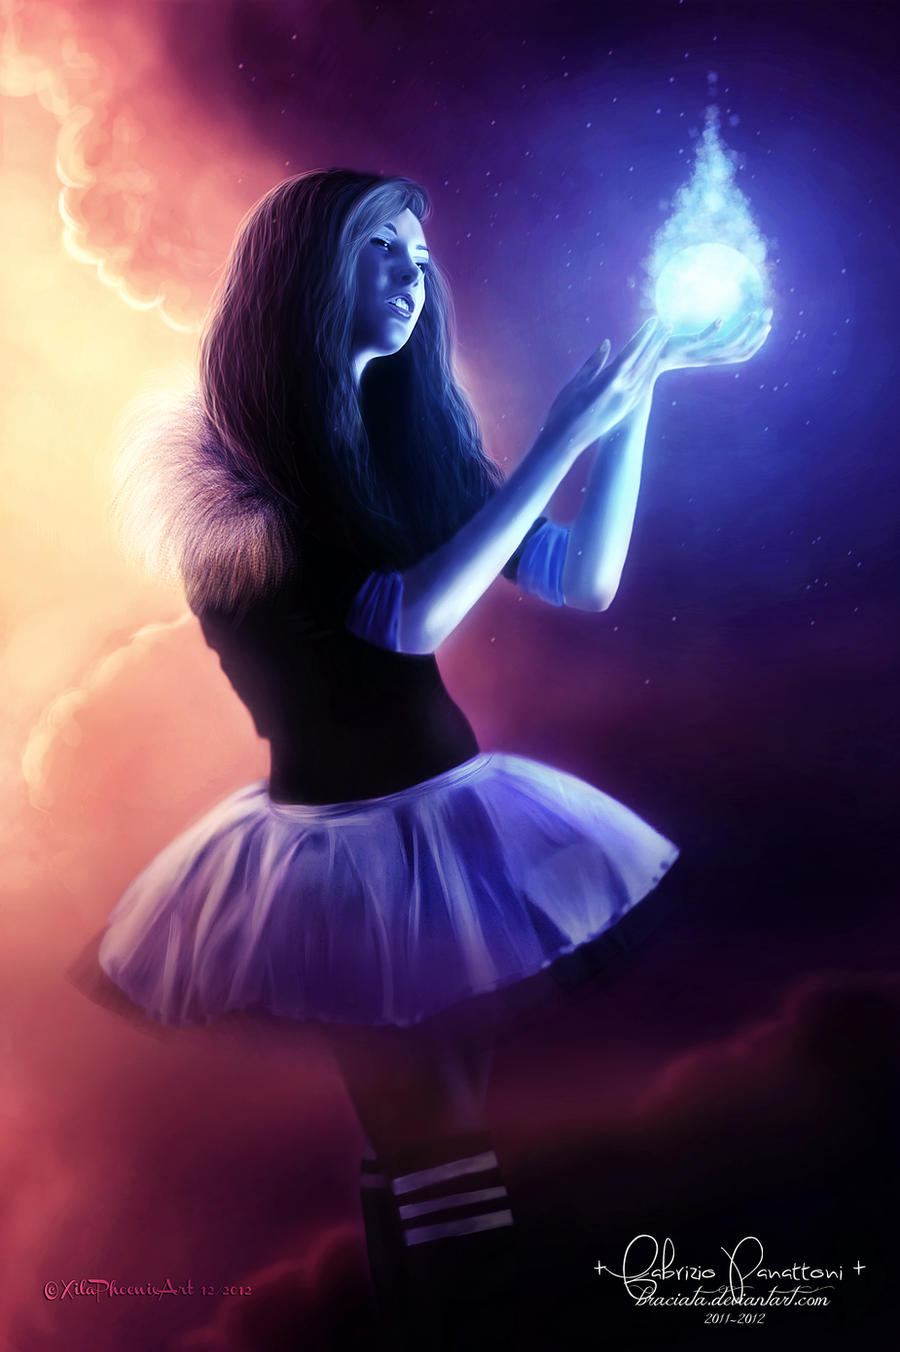 A kind of magic by FP-Digital-Art